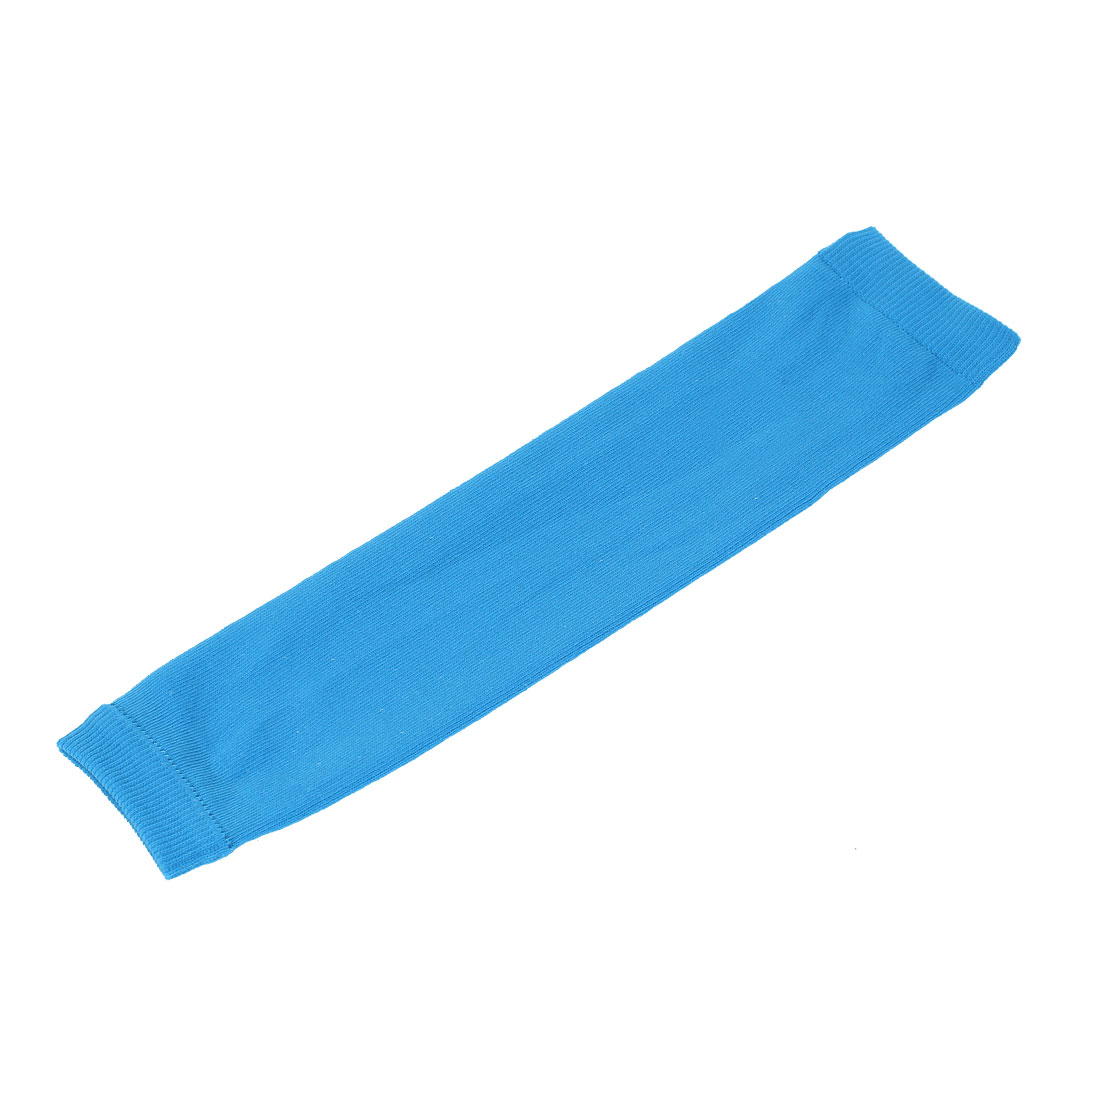 Cotton Elastic Unisex Outdoor Arm Sleeves for Basketball Cycling Sports Blue